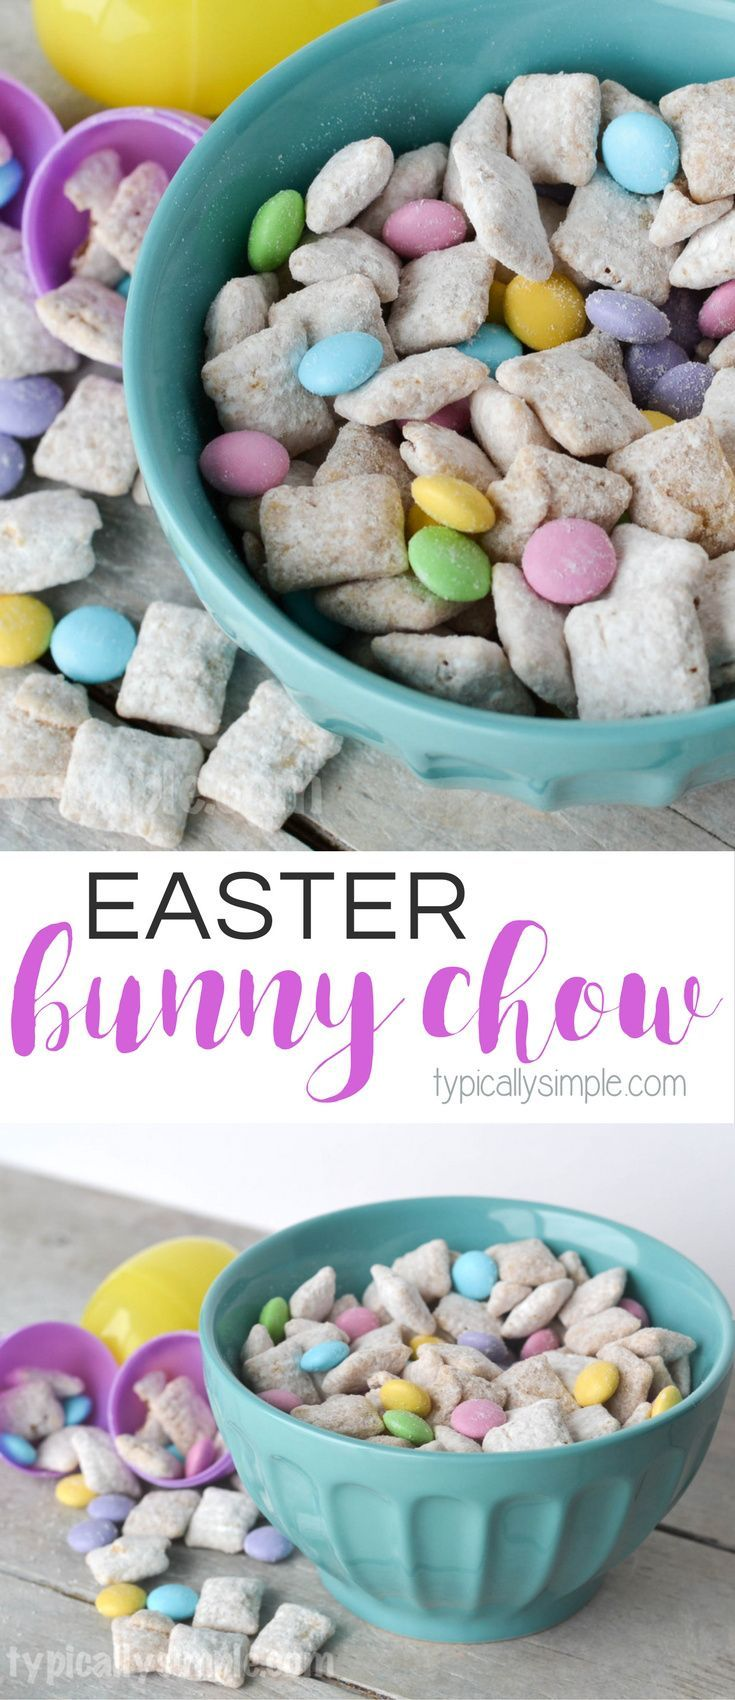 This Easter Bunny Chow recipe is a fun spin on Puppy Chow and makes the perfect treat for Easter or spring! With pastel colored M&M's and a touch of butterscotch, it's a delicious, tasty treat!